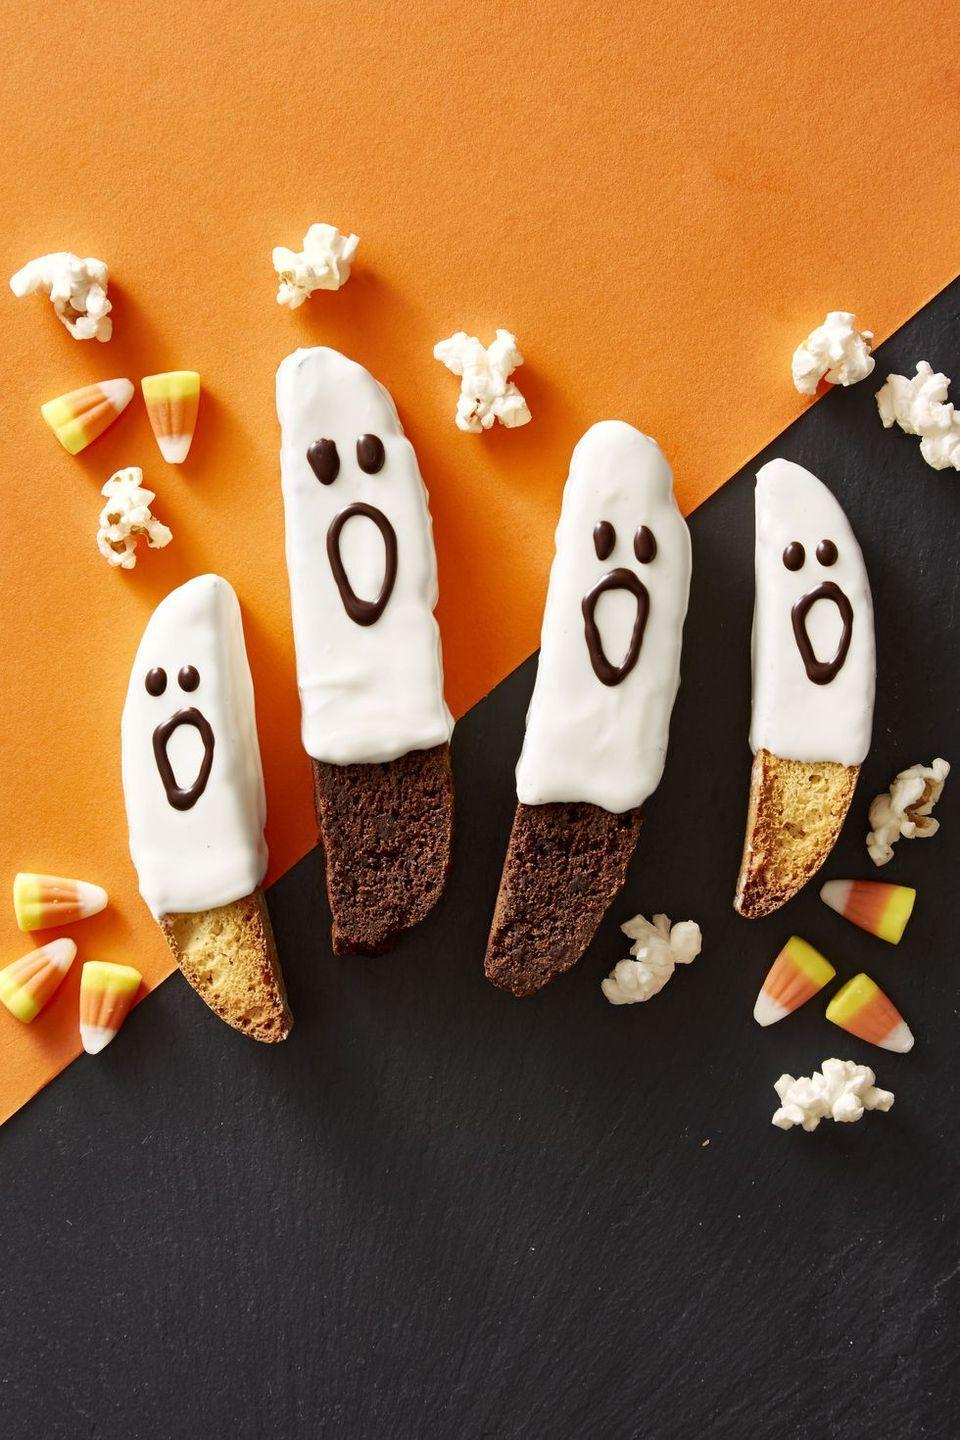 """<p>Give the parents a snack to go with their coffee (a must for Halloween night!).</p><p><em><strong>Get the recipe at <a href=""""https://www.goodhousekeeping.com/food-recipes/a46101/boo-scotti-recipe/"""" rel=""""nofollow noopener"""" target=""""_blank"""" data-ylk=""""slk:Good Housekeeping"""" class=""""link rapid-noclick-resp"""">Good Housekeeping</a>.</strong></em></p>"""